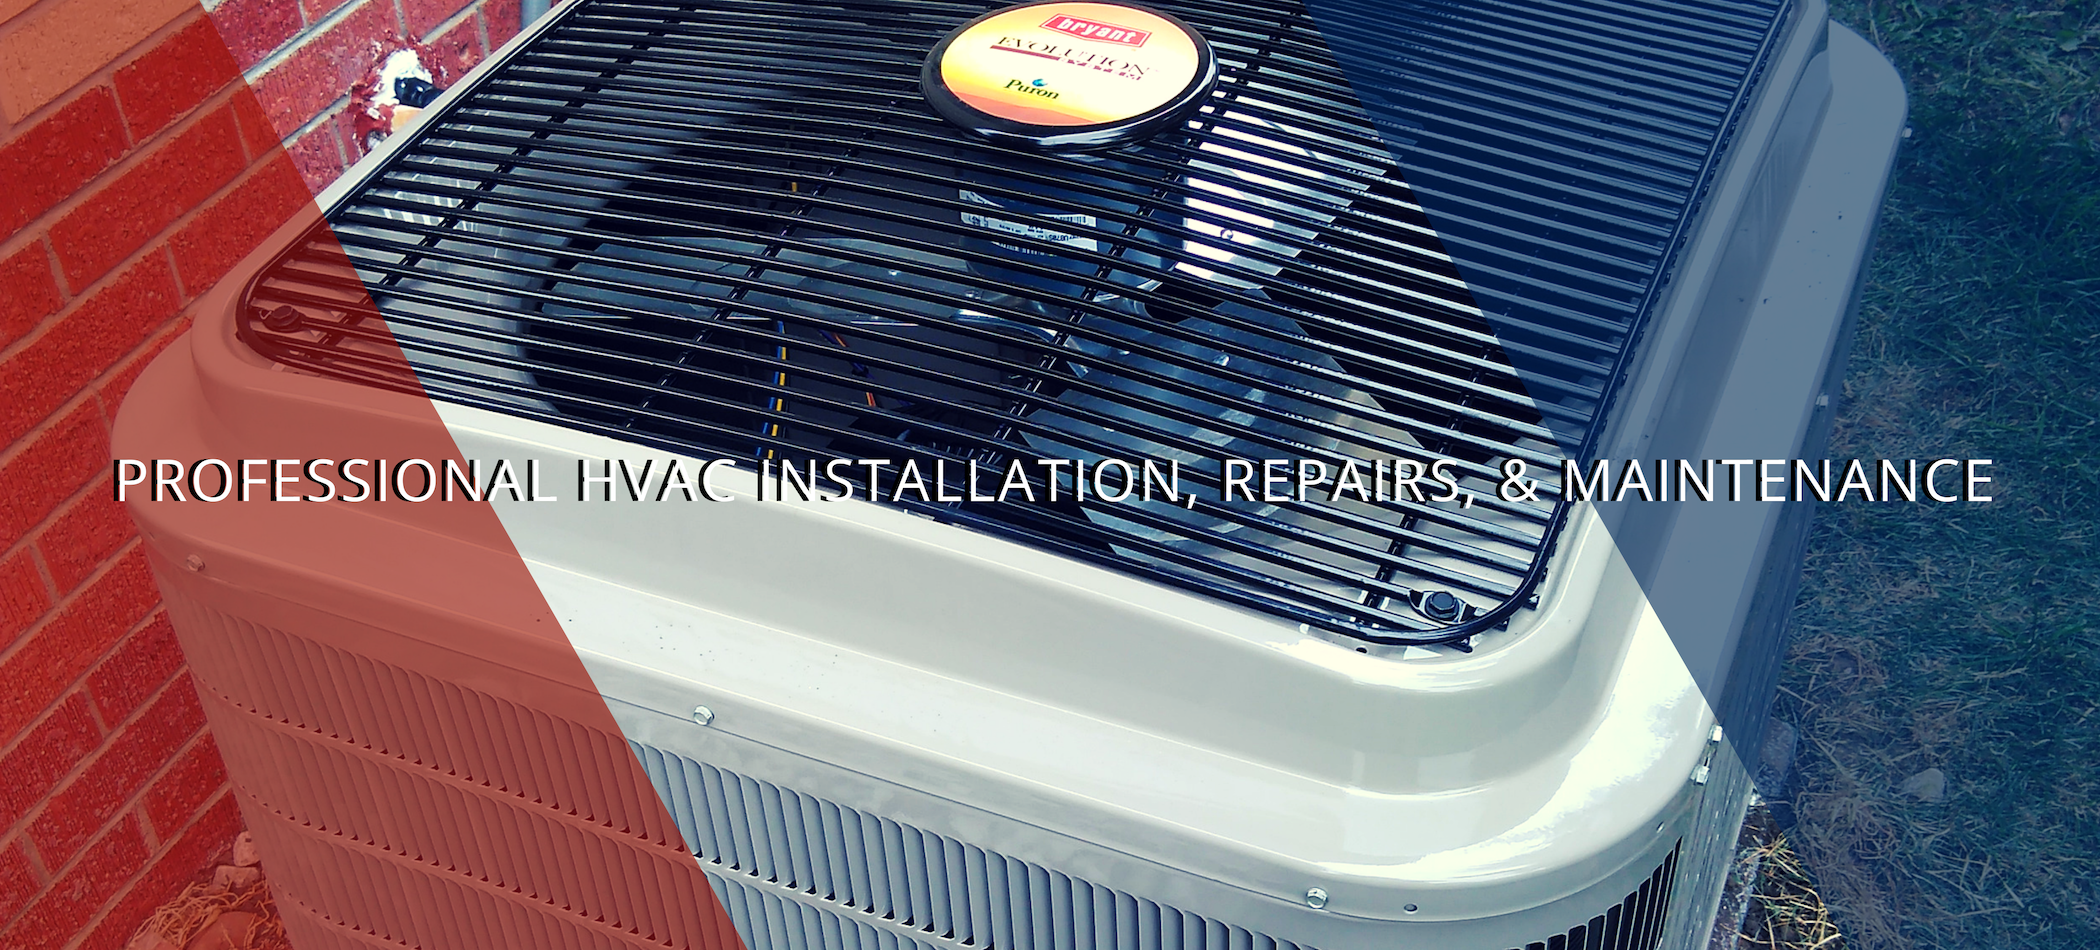 HVAC repairs installation and maintenance